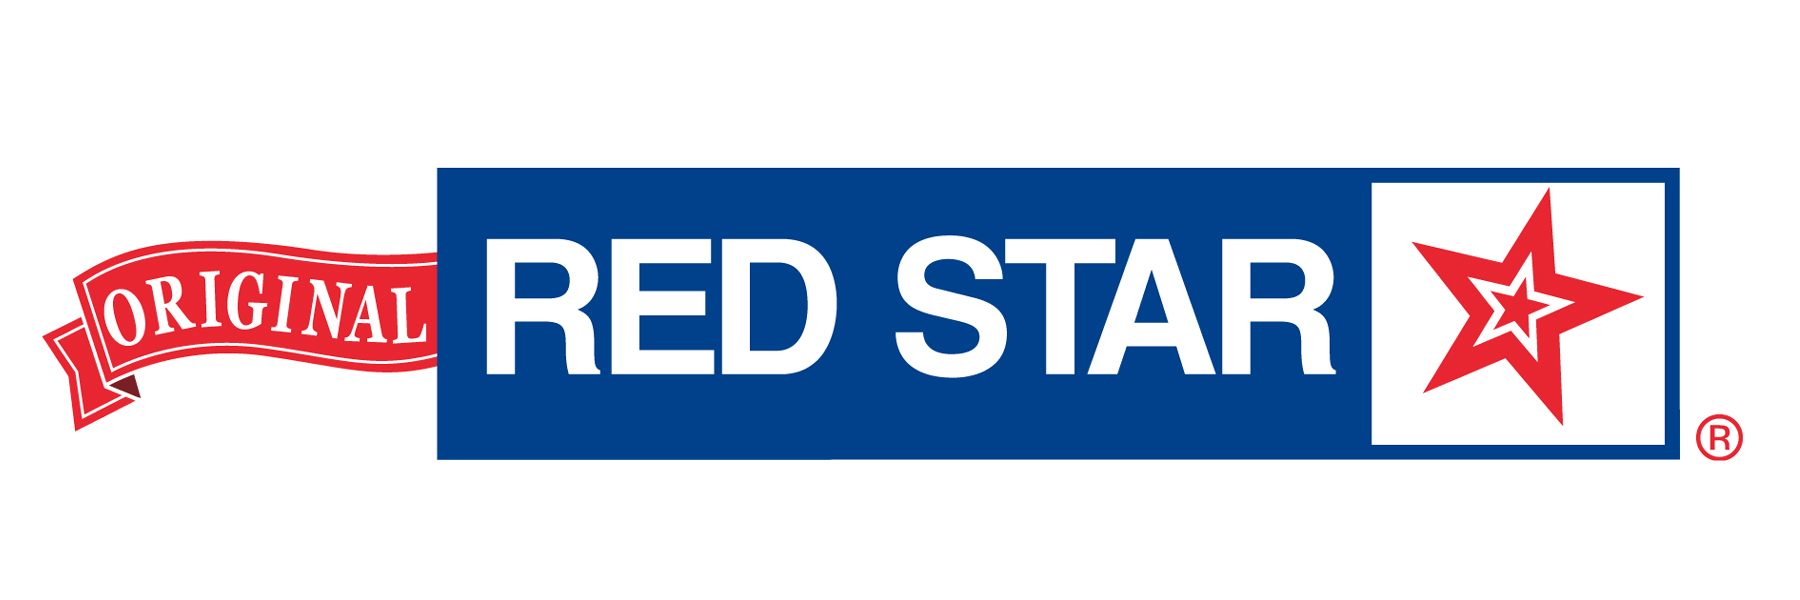 Red Star Yeast Original Logo - Color